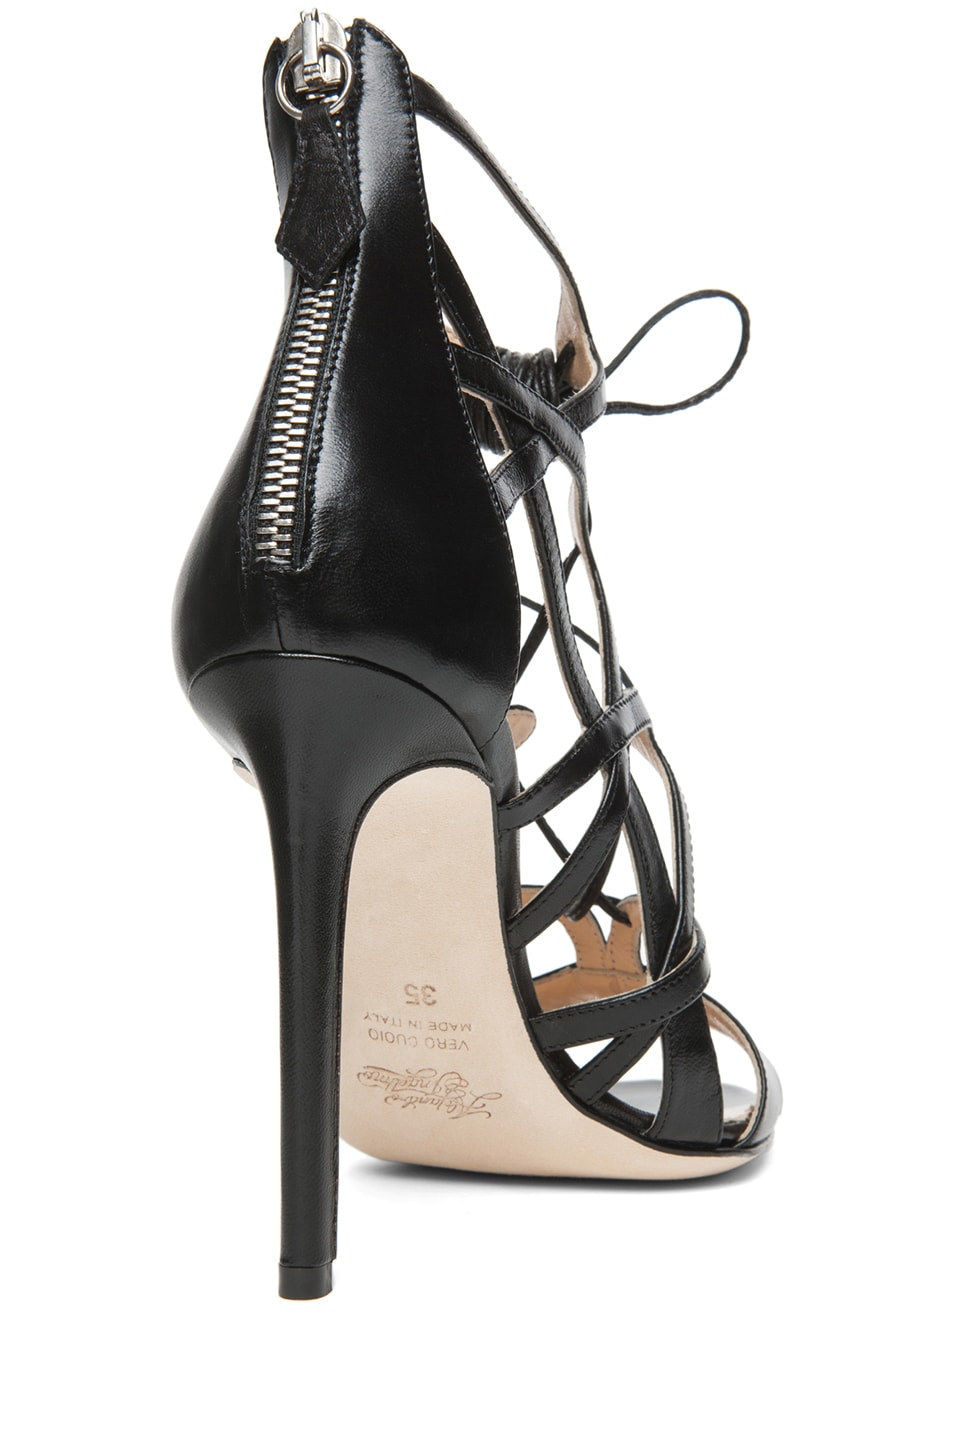 Image 3 of Alejandro Ingelmo Boomerang Calfskin Leather Lace Up Sandal in Black